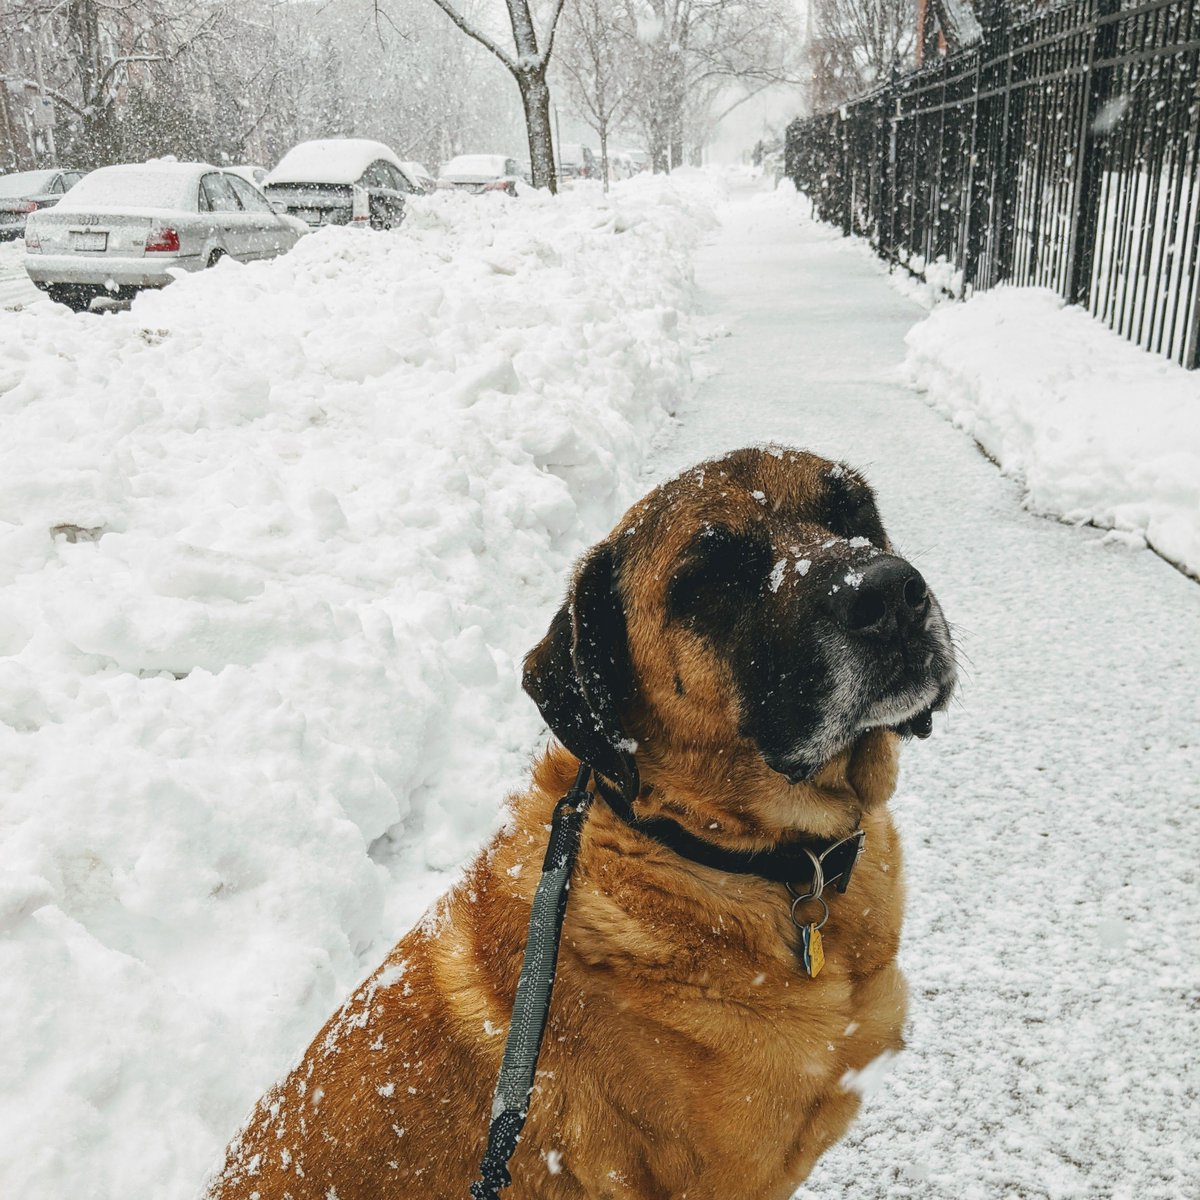 In tune with mother nature ❄️   #SparkySteps #Chicago #dog #pets #doggo #puppy #DogoftheDay #photooftheday #dogsofchicago #bestwoof #lifewithdogs #boop #dailyfluff #doglover #dogsarefamily #chicagodog #dogsoftwitter #Mastiff #mixedbreed #winter #snow